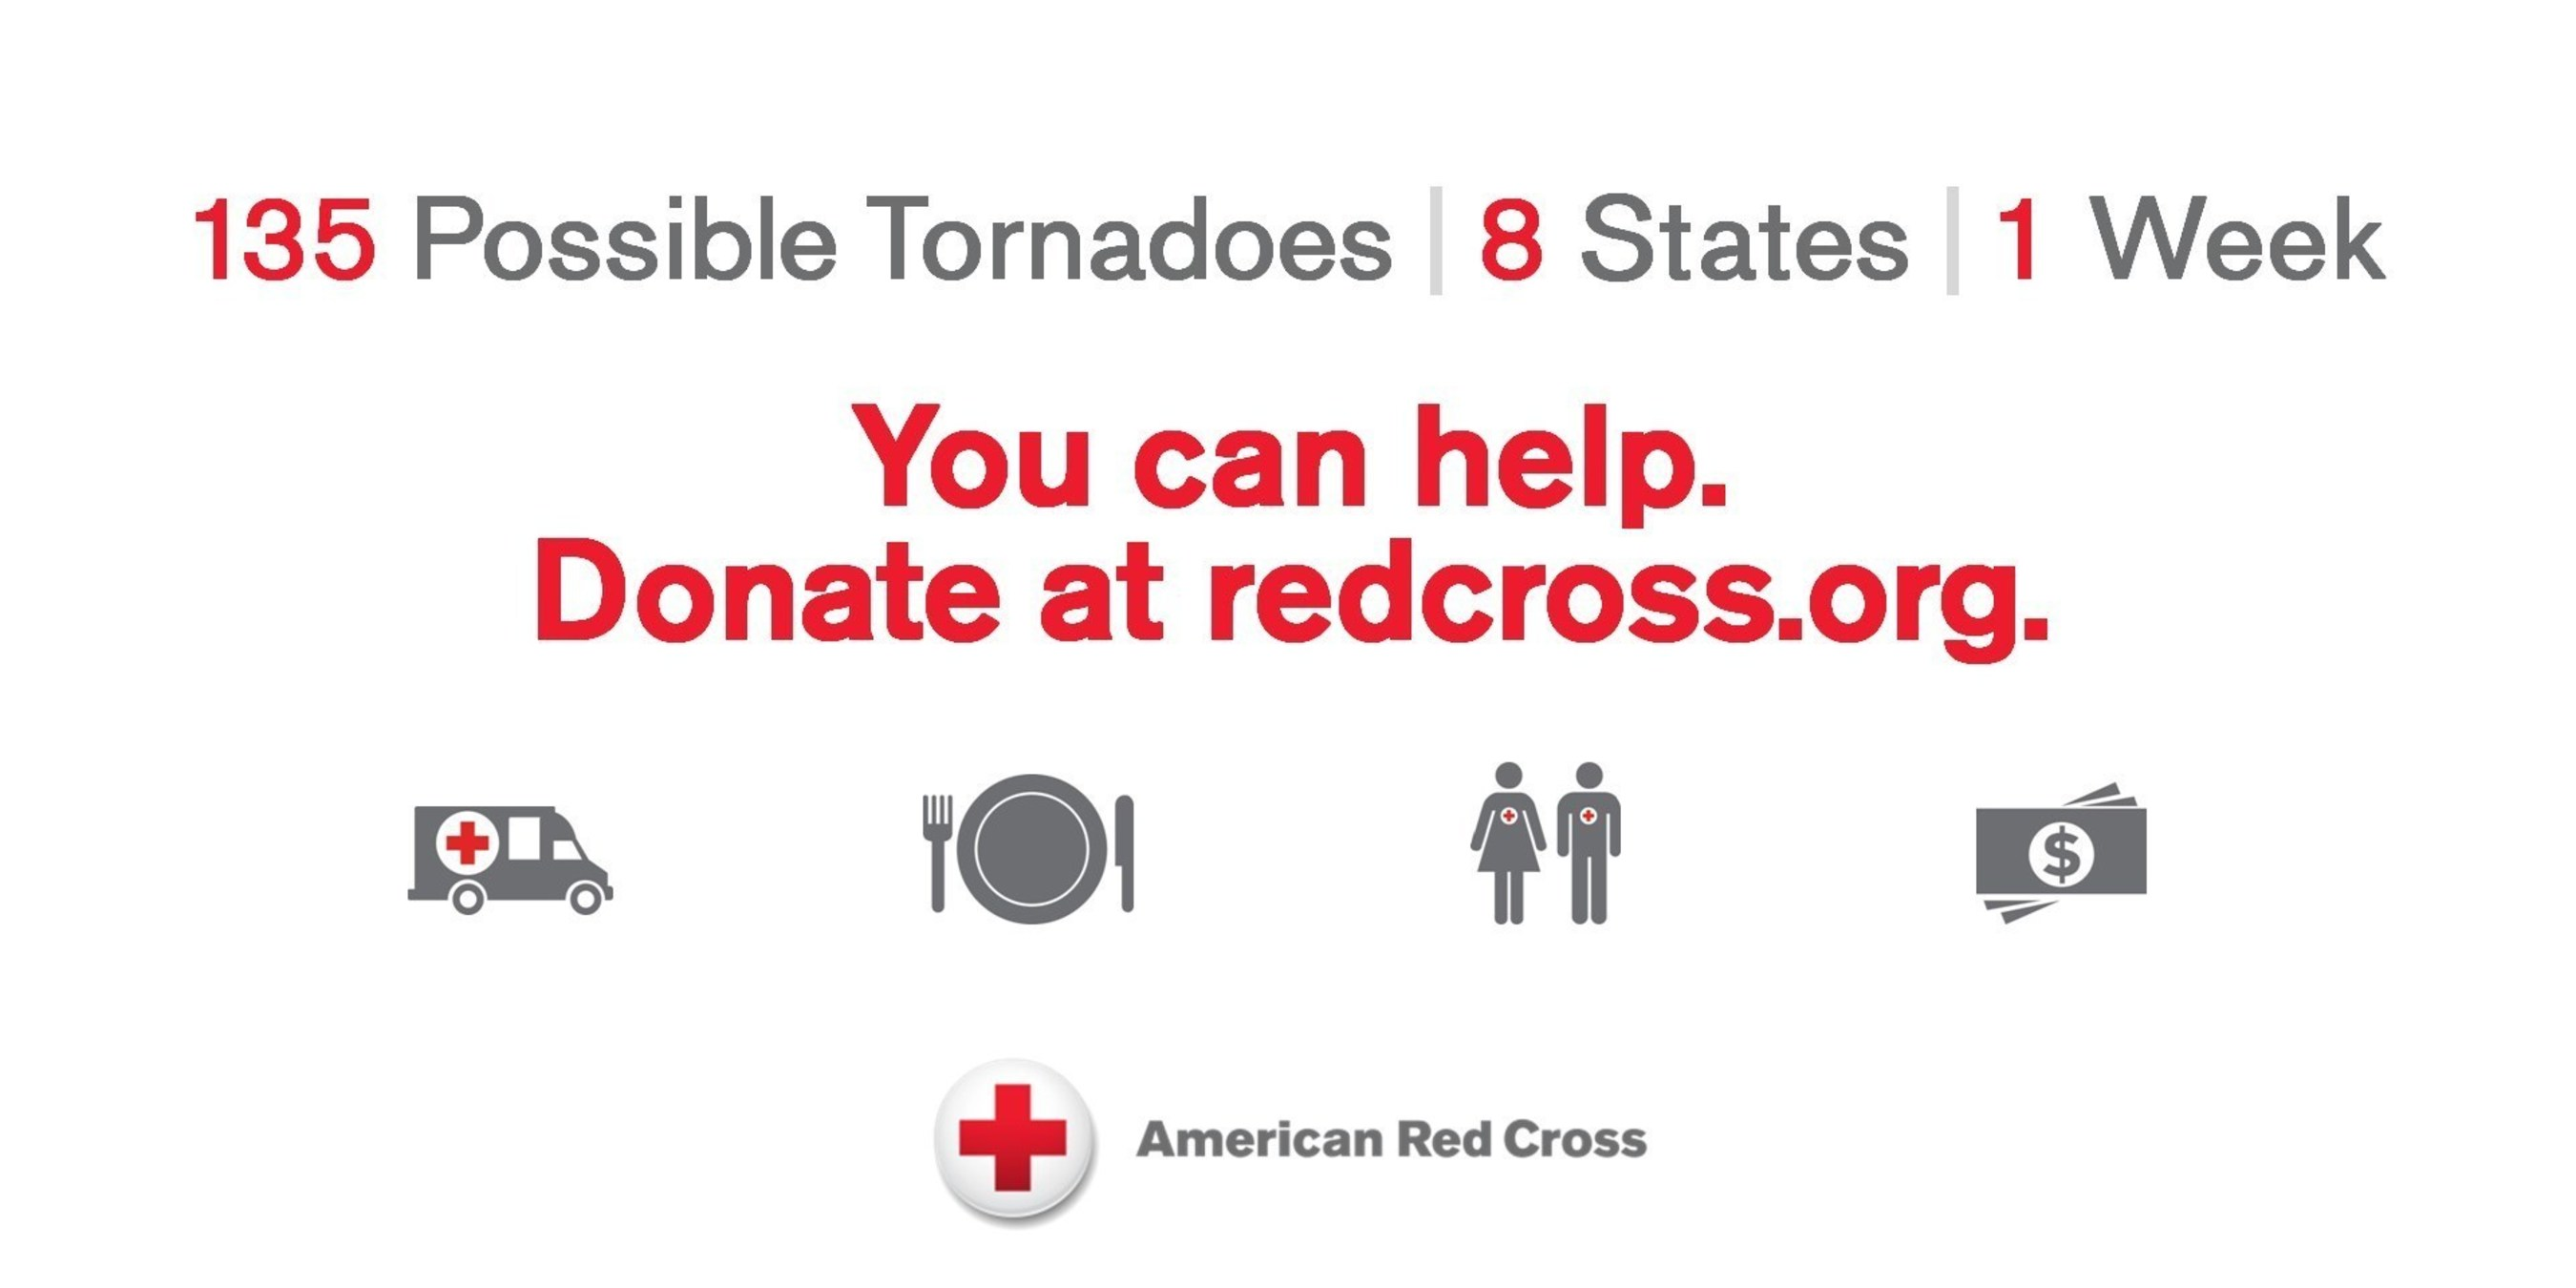 The American Red Cross is helping people in eight Midwest states after as many as 135 possible tornadoes moved through the region over the last several days.